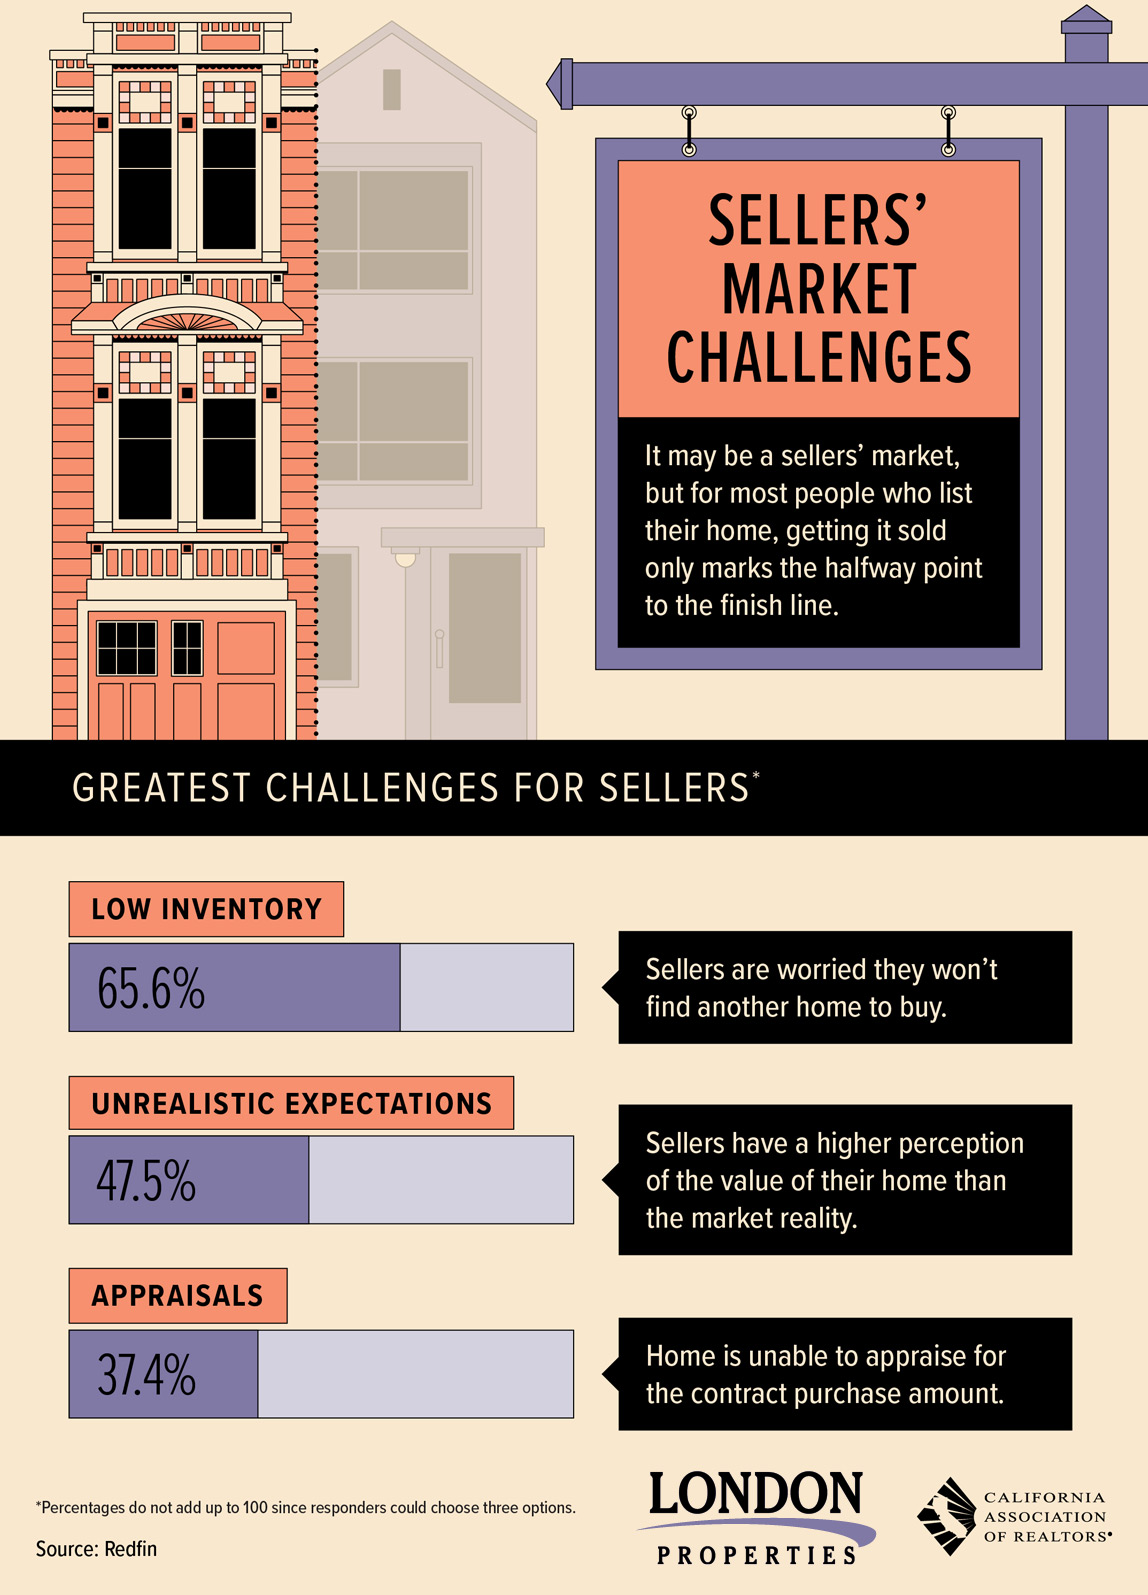 Sellers' Market Challenges